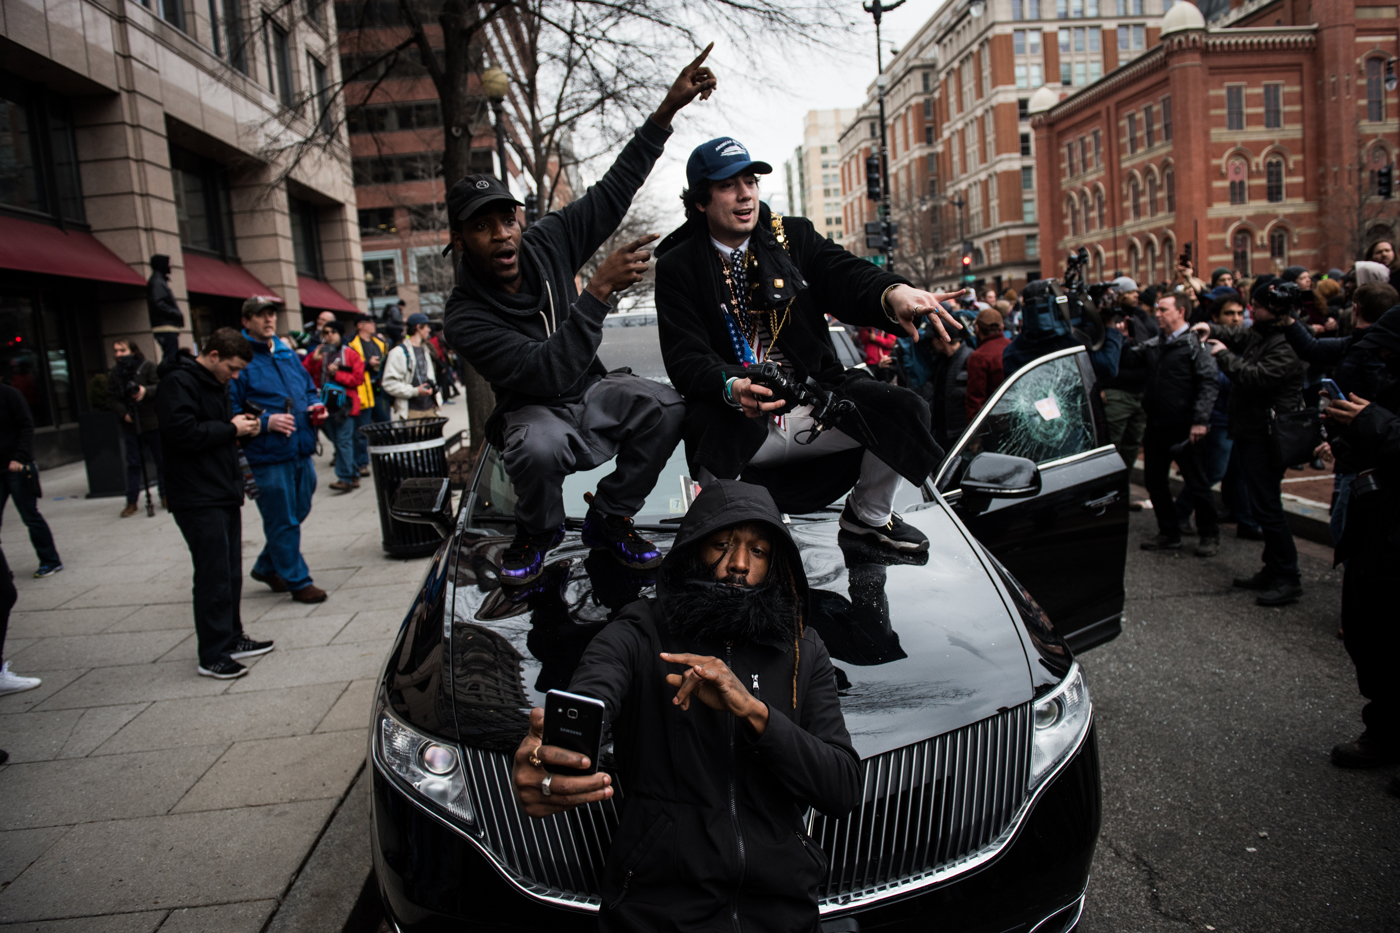 People dance on a destroyed limousine for cameras filming them after Donald Trump's inauguration as the 45th President of the United States in Washington, D.C., on January 20, 2017. Credit: Mark Kauzlarich for CNN